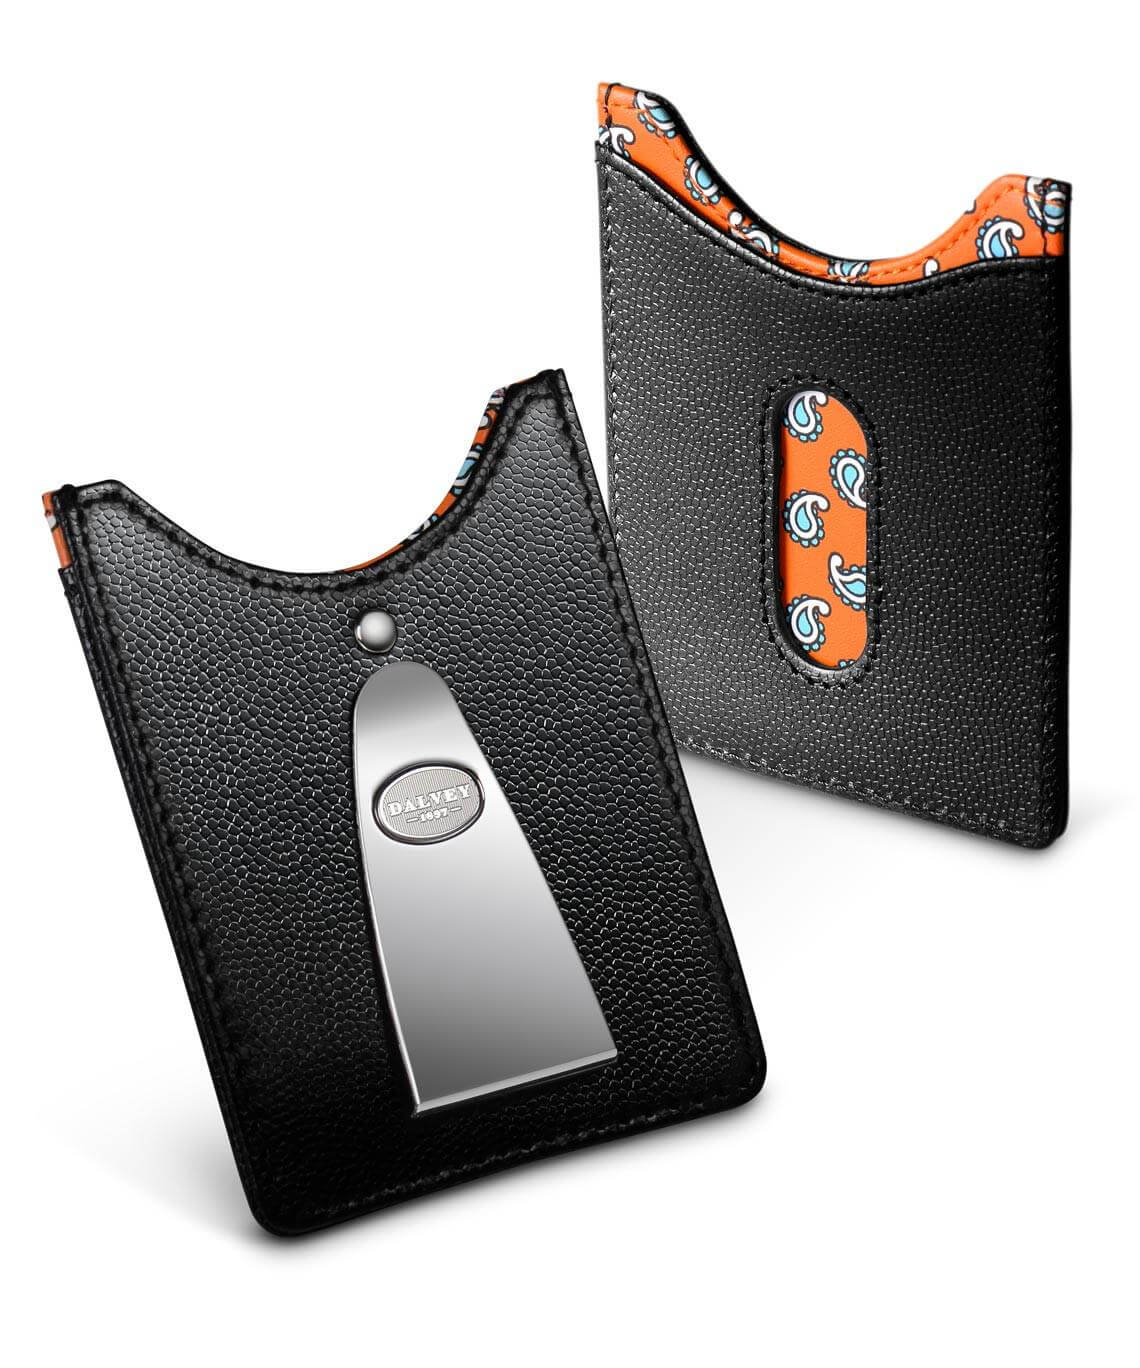 Access Credit Card & Money Clip - Black / Orange Paisley